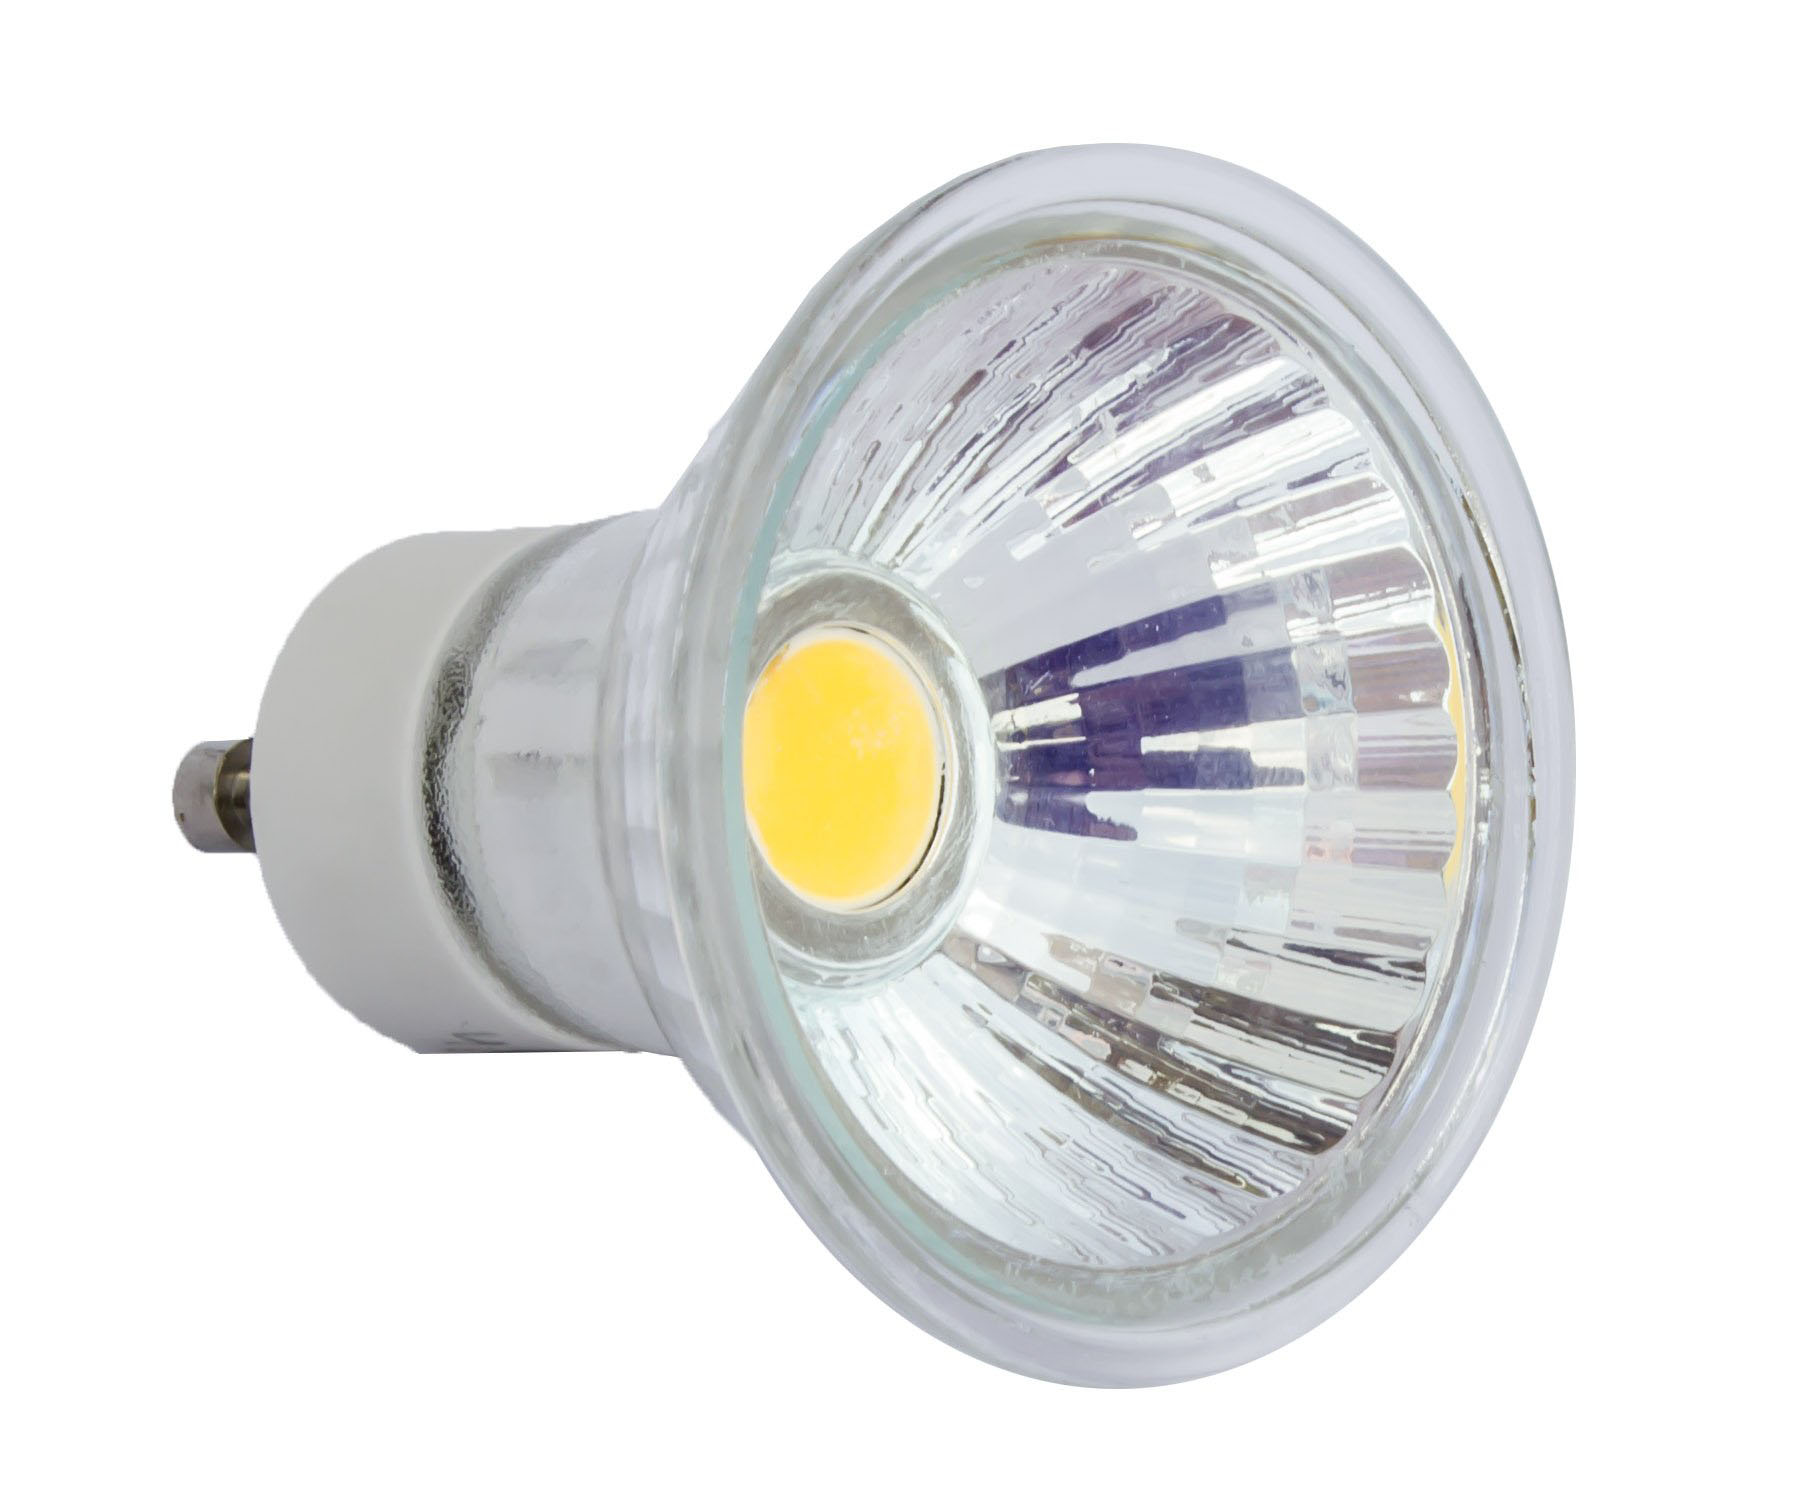 Led gu10 lampen 230v als strahler led for Led lampen 0 5 watt